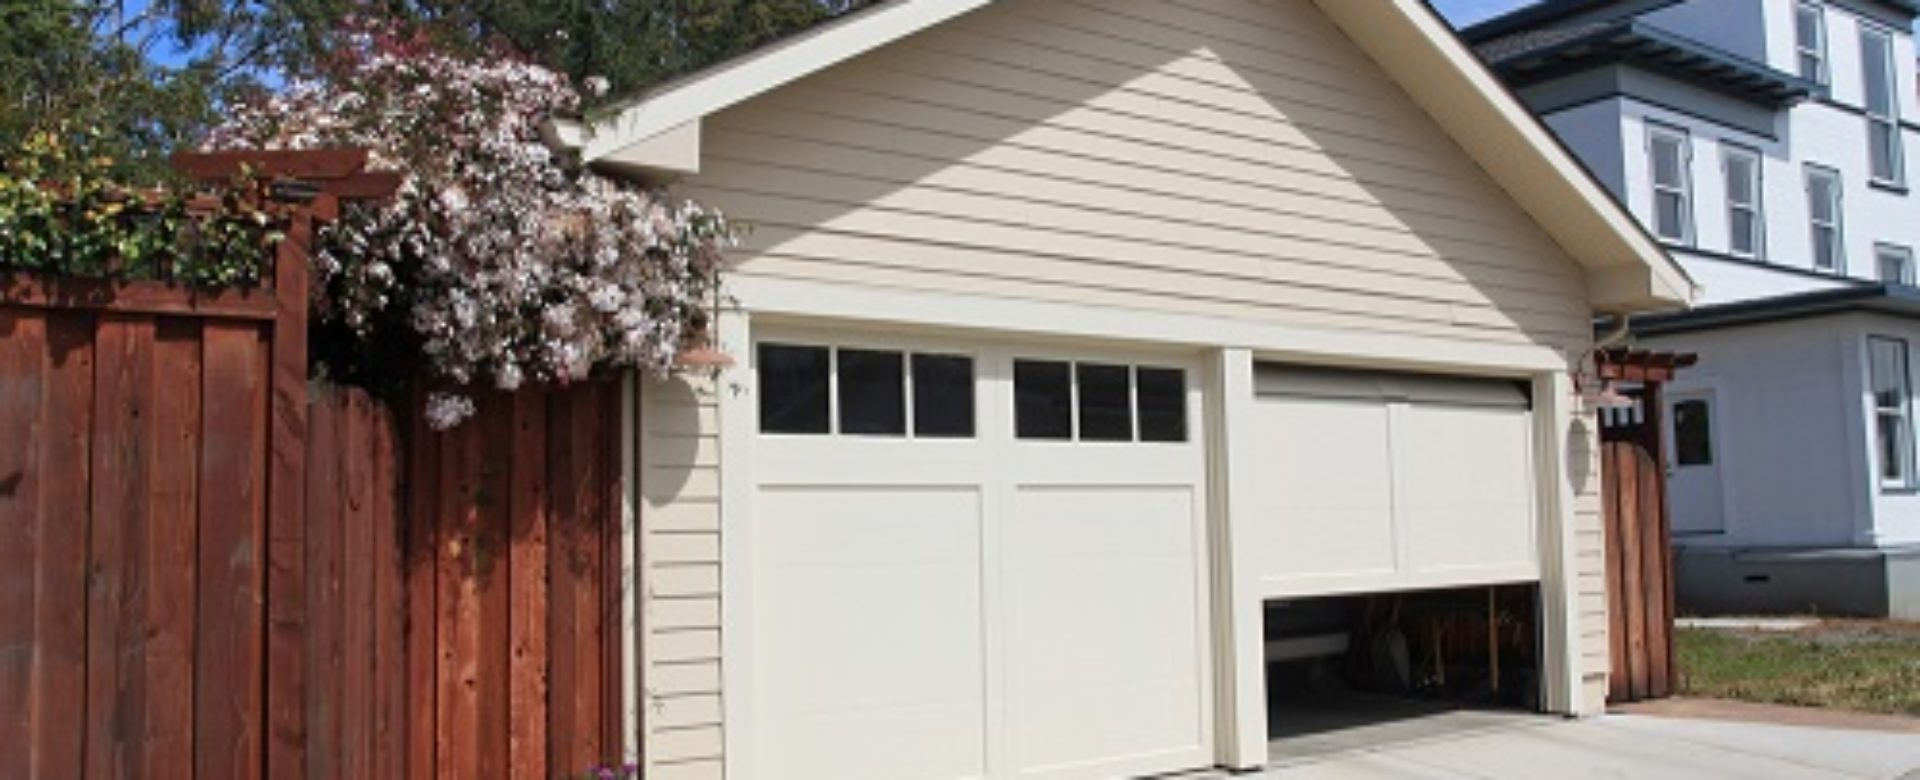 company garage opener contemporary size phoenix henderson full door parker stanley doors genie of installation repair